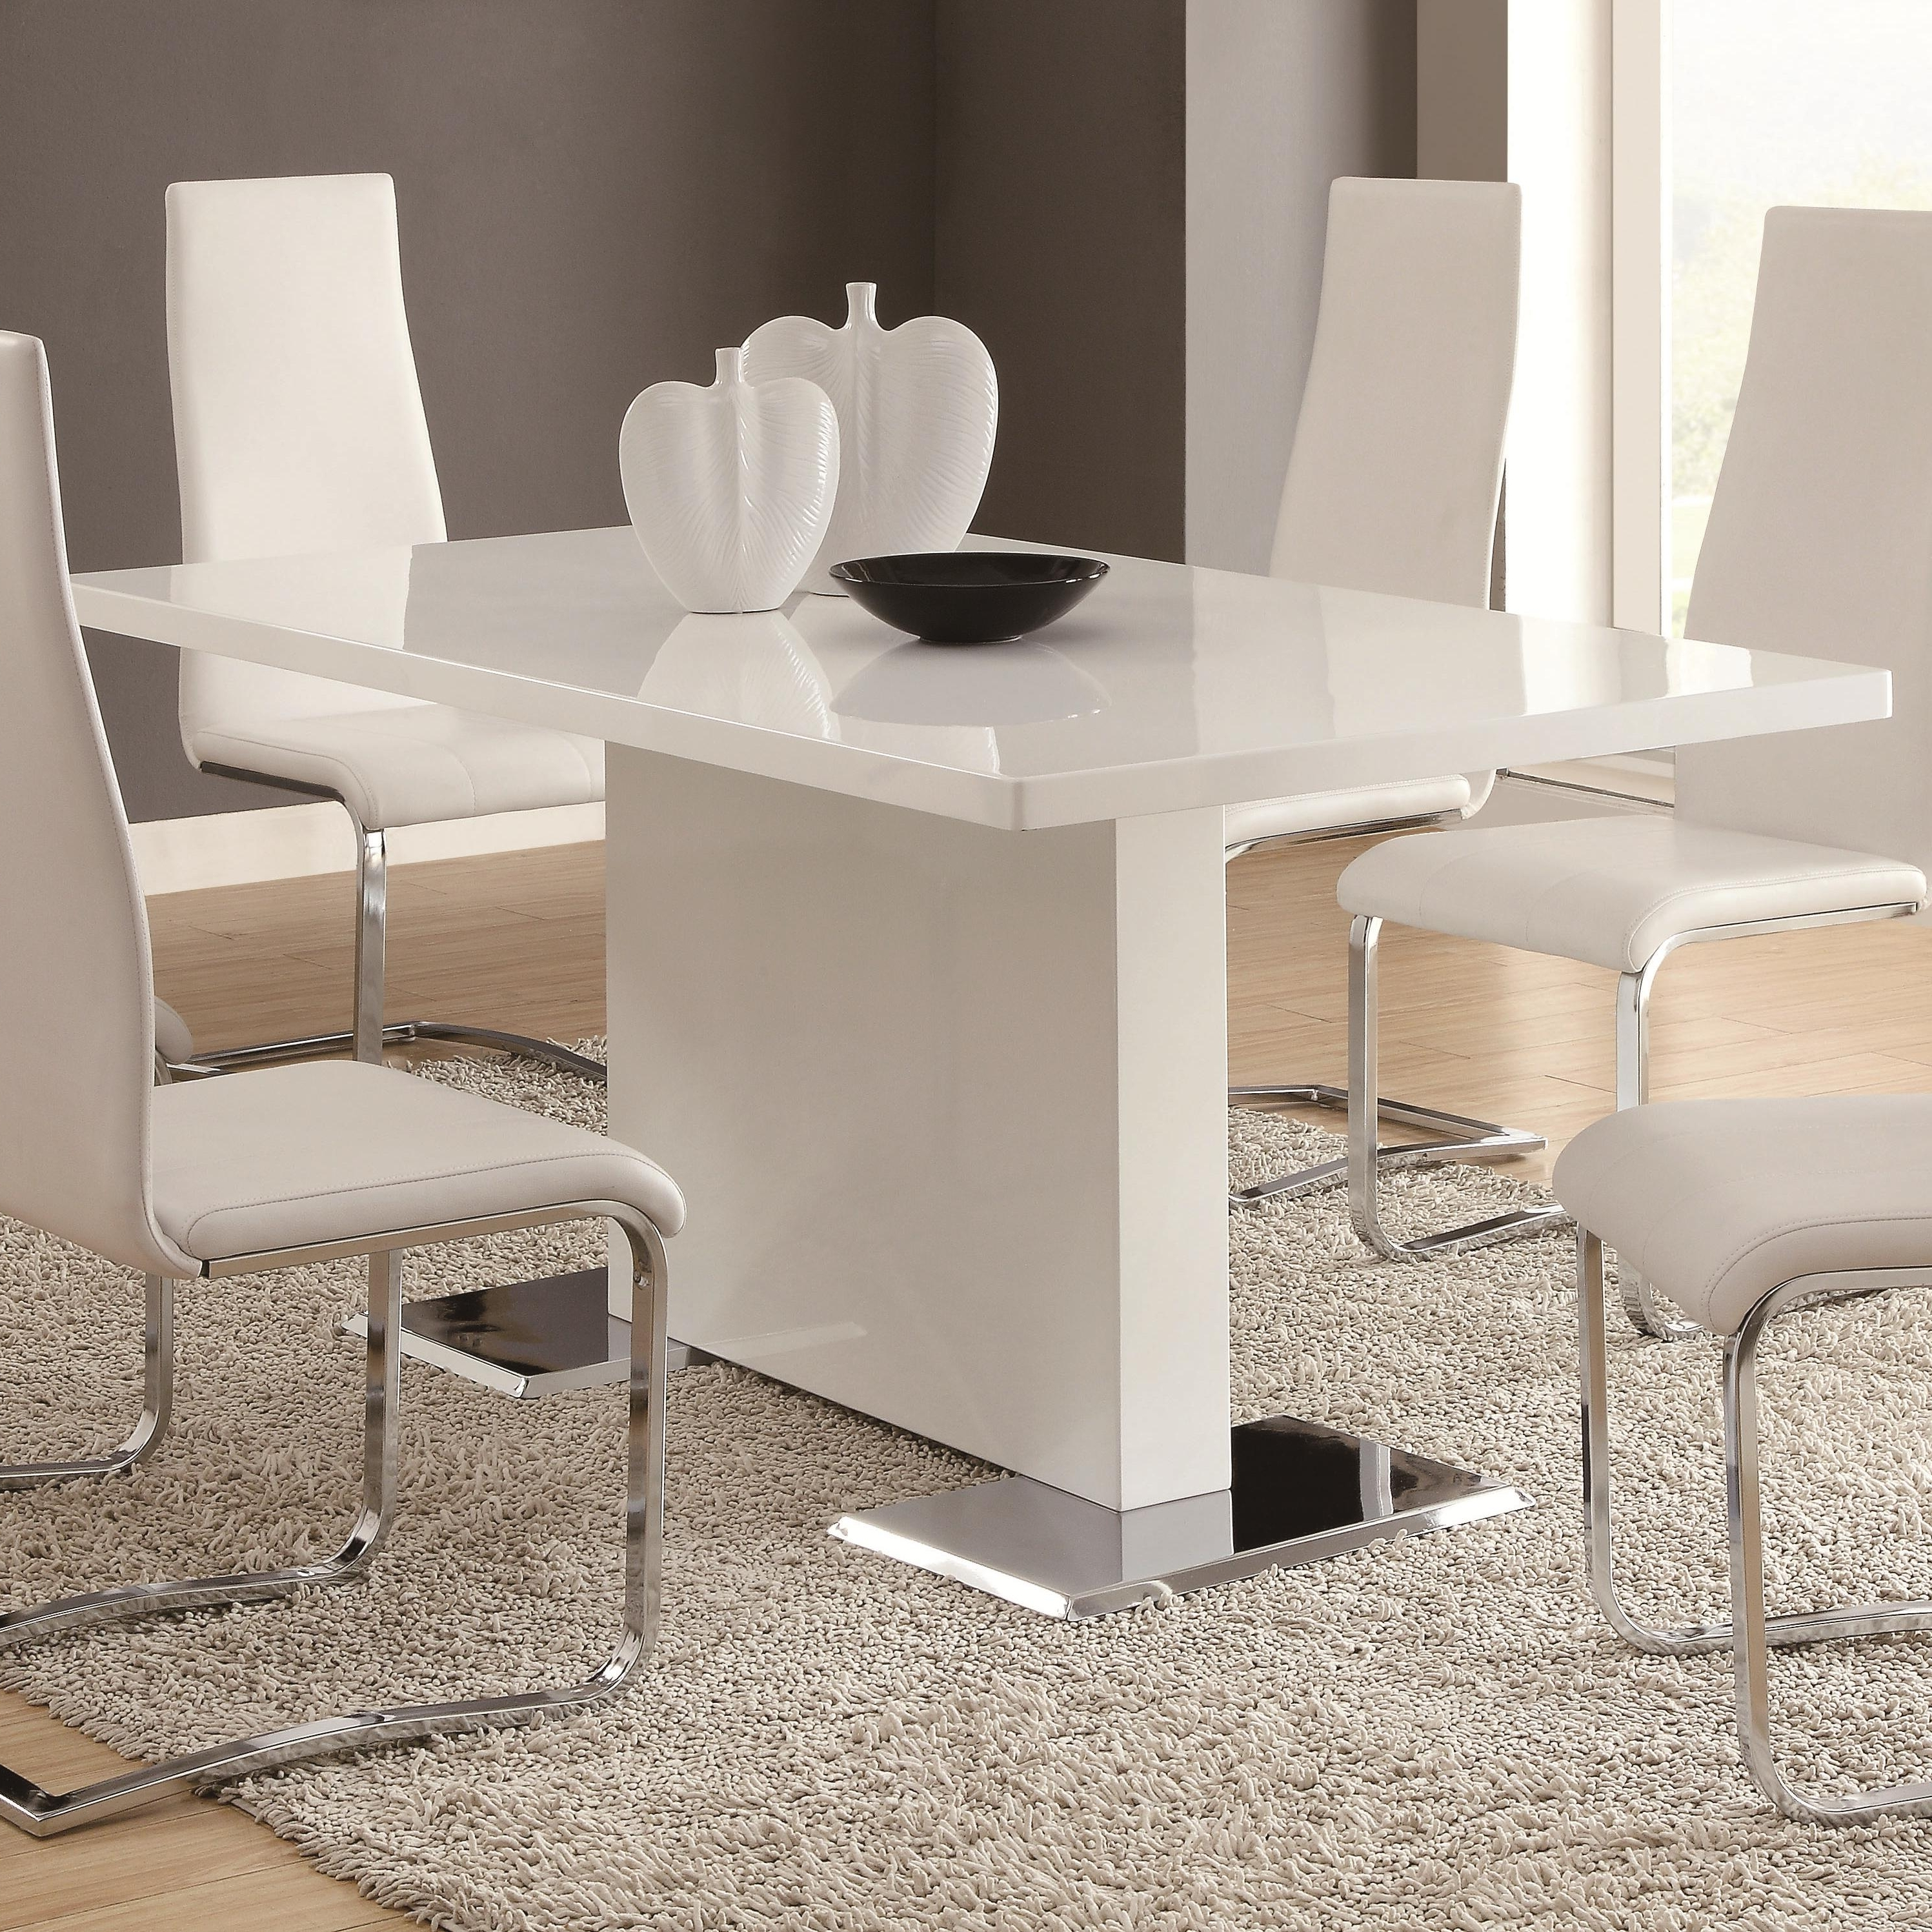 Most Recently Released Coaster Modern Dining 102310 White Dining Table With Chrome Metal For White Square Extending Dining Tables (View 9 of 25)